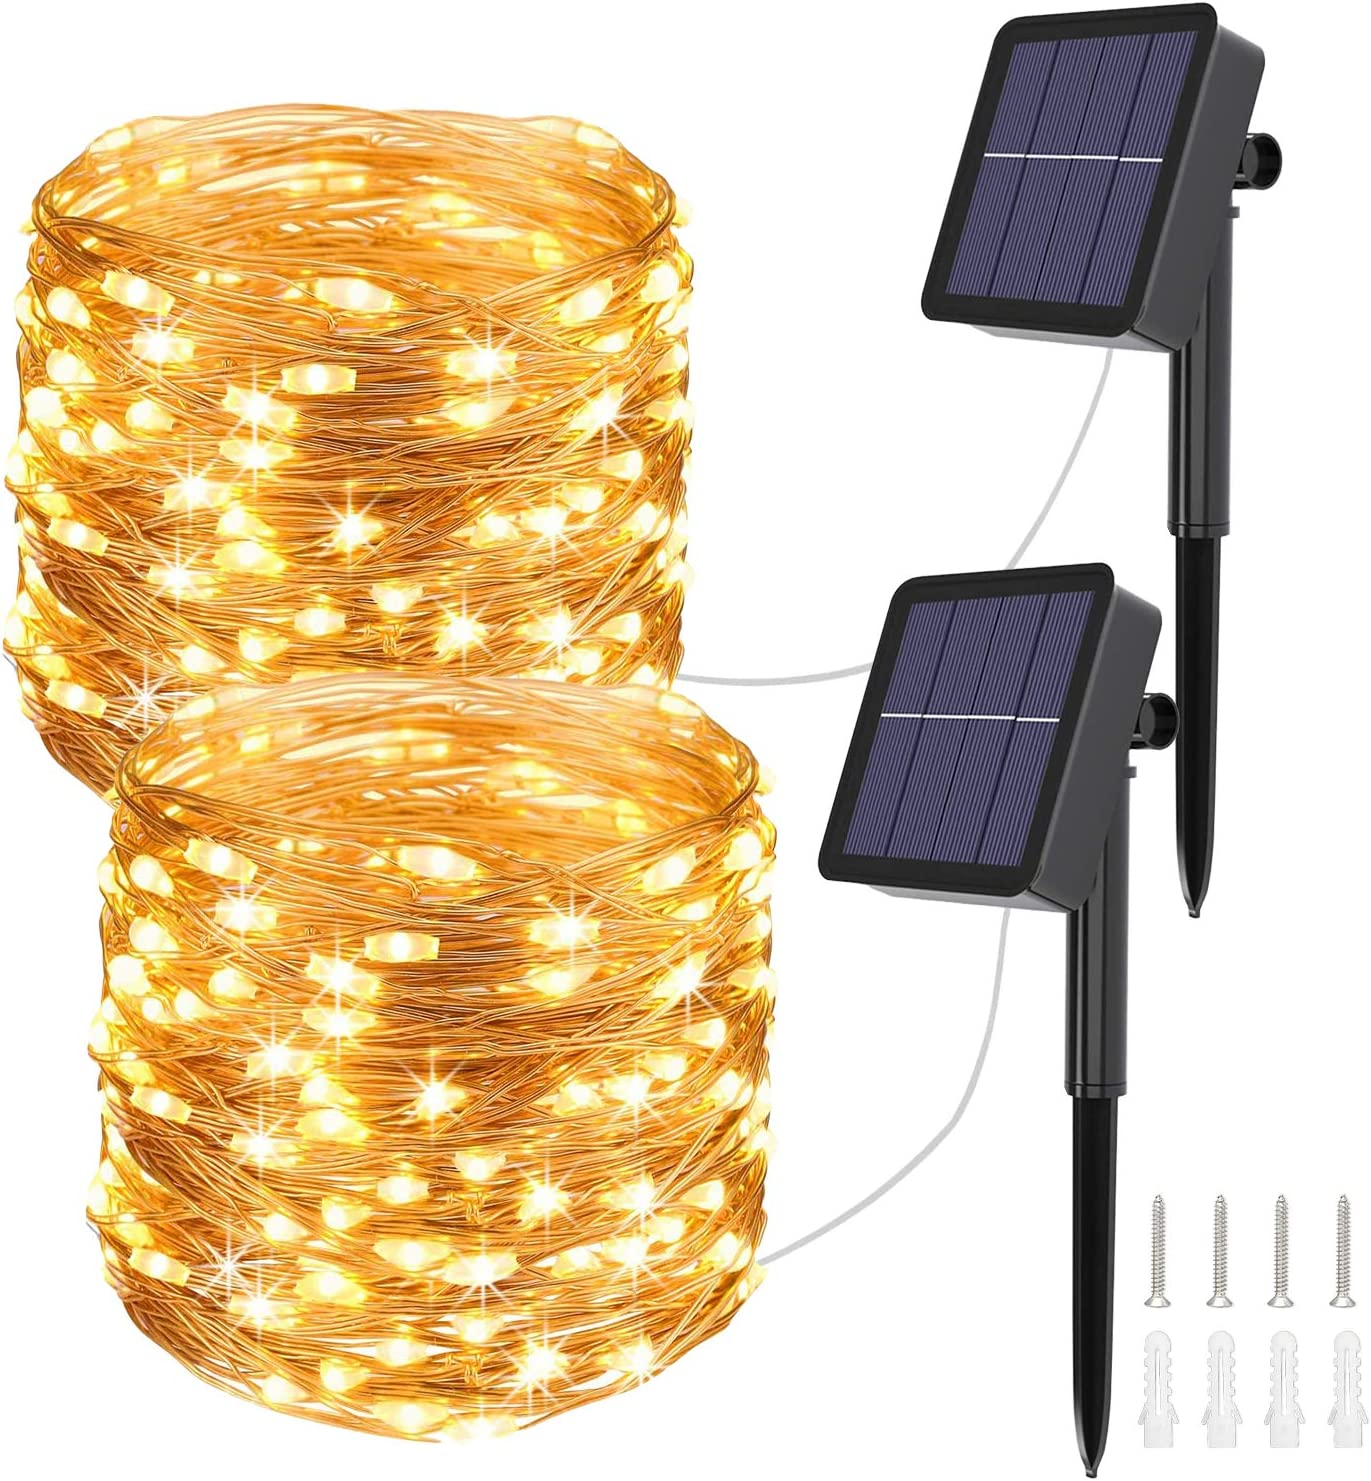 Solar String Lights Outdoor Garden Lights 76ft 200 LED Fairy Lights 8 Modes Waterproof Copper Wire Light for Party Patio Yard Christmas Trees Wedding Halloween (Warm White)